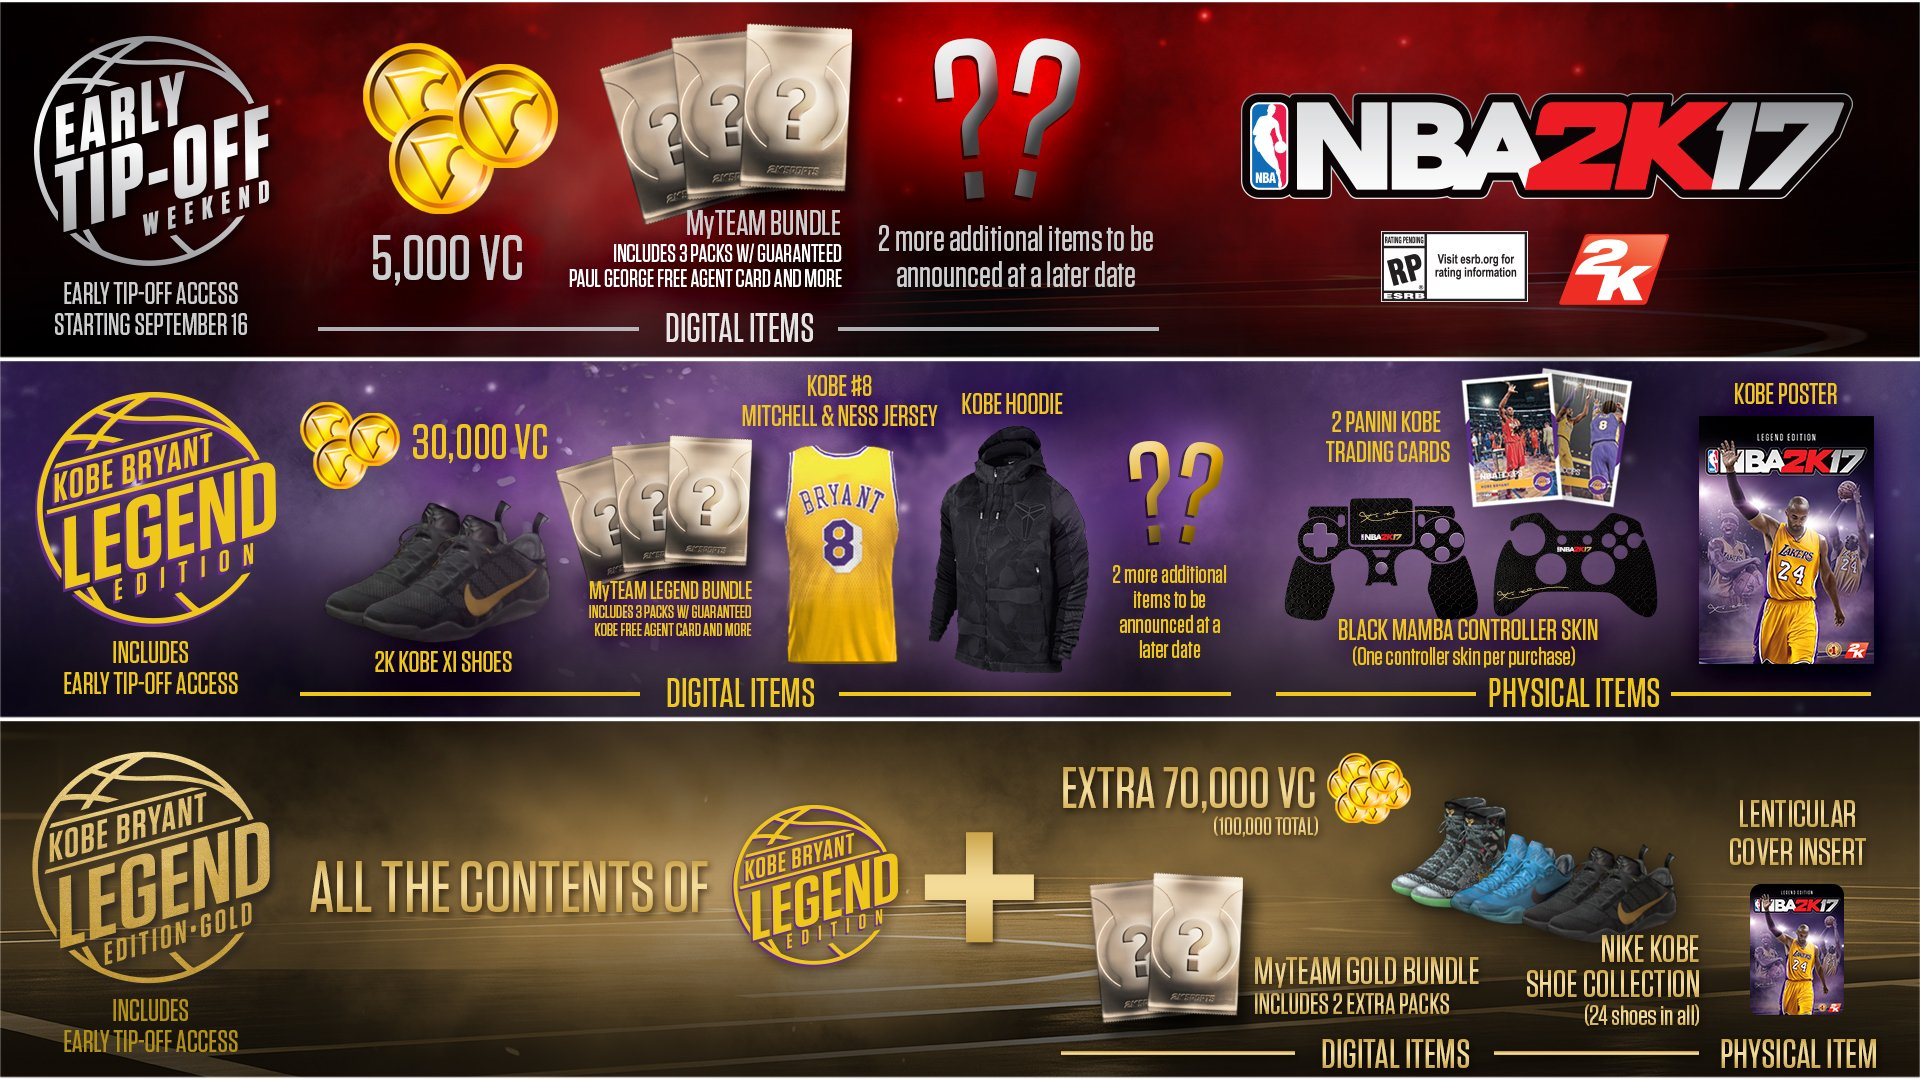 2k19 release date gold edition